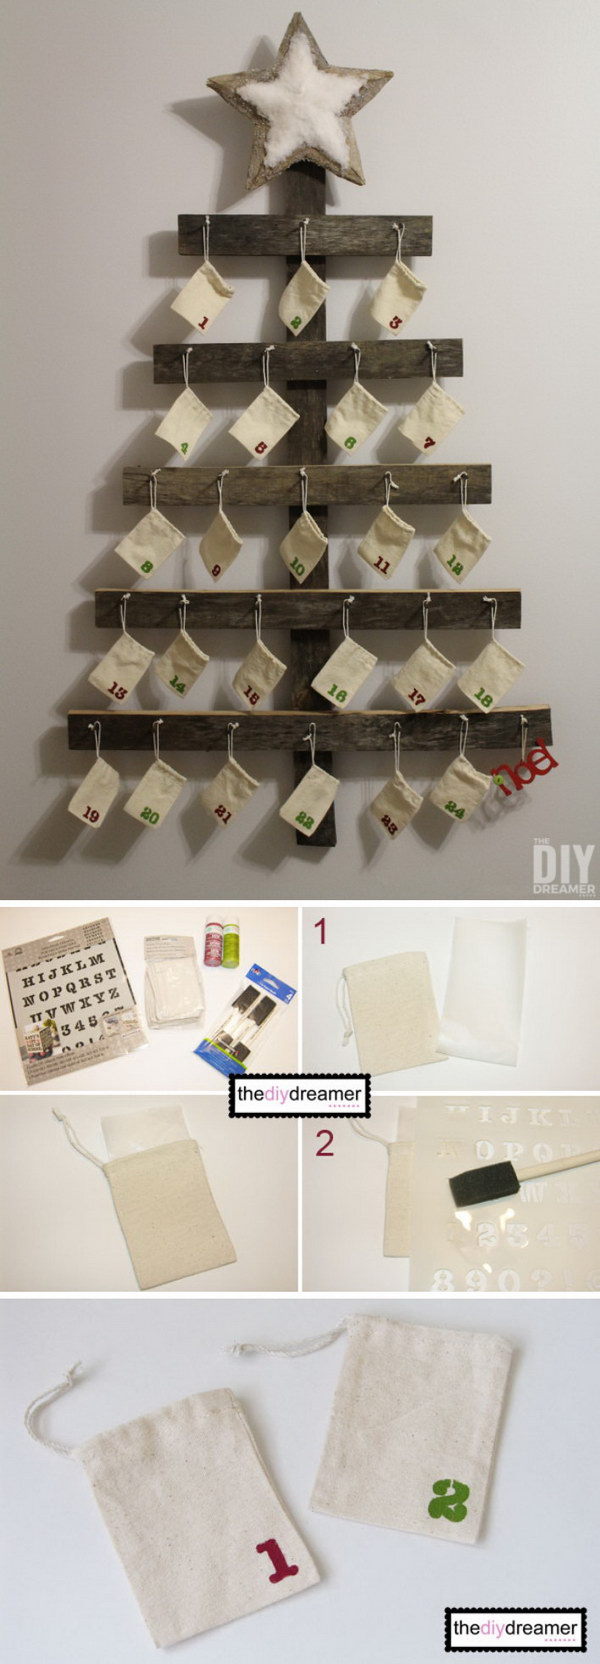 Diy Calendar Supplies : Diy rustic christmas decoration ideas tutorials